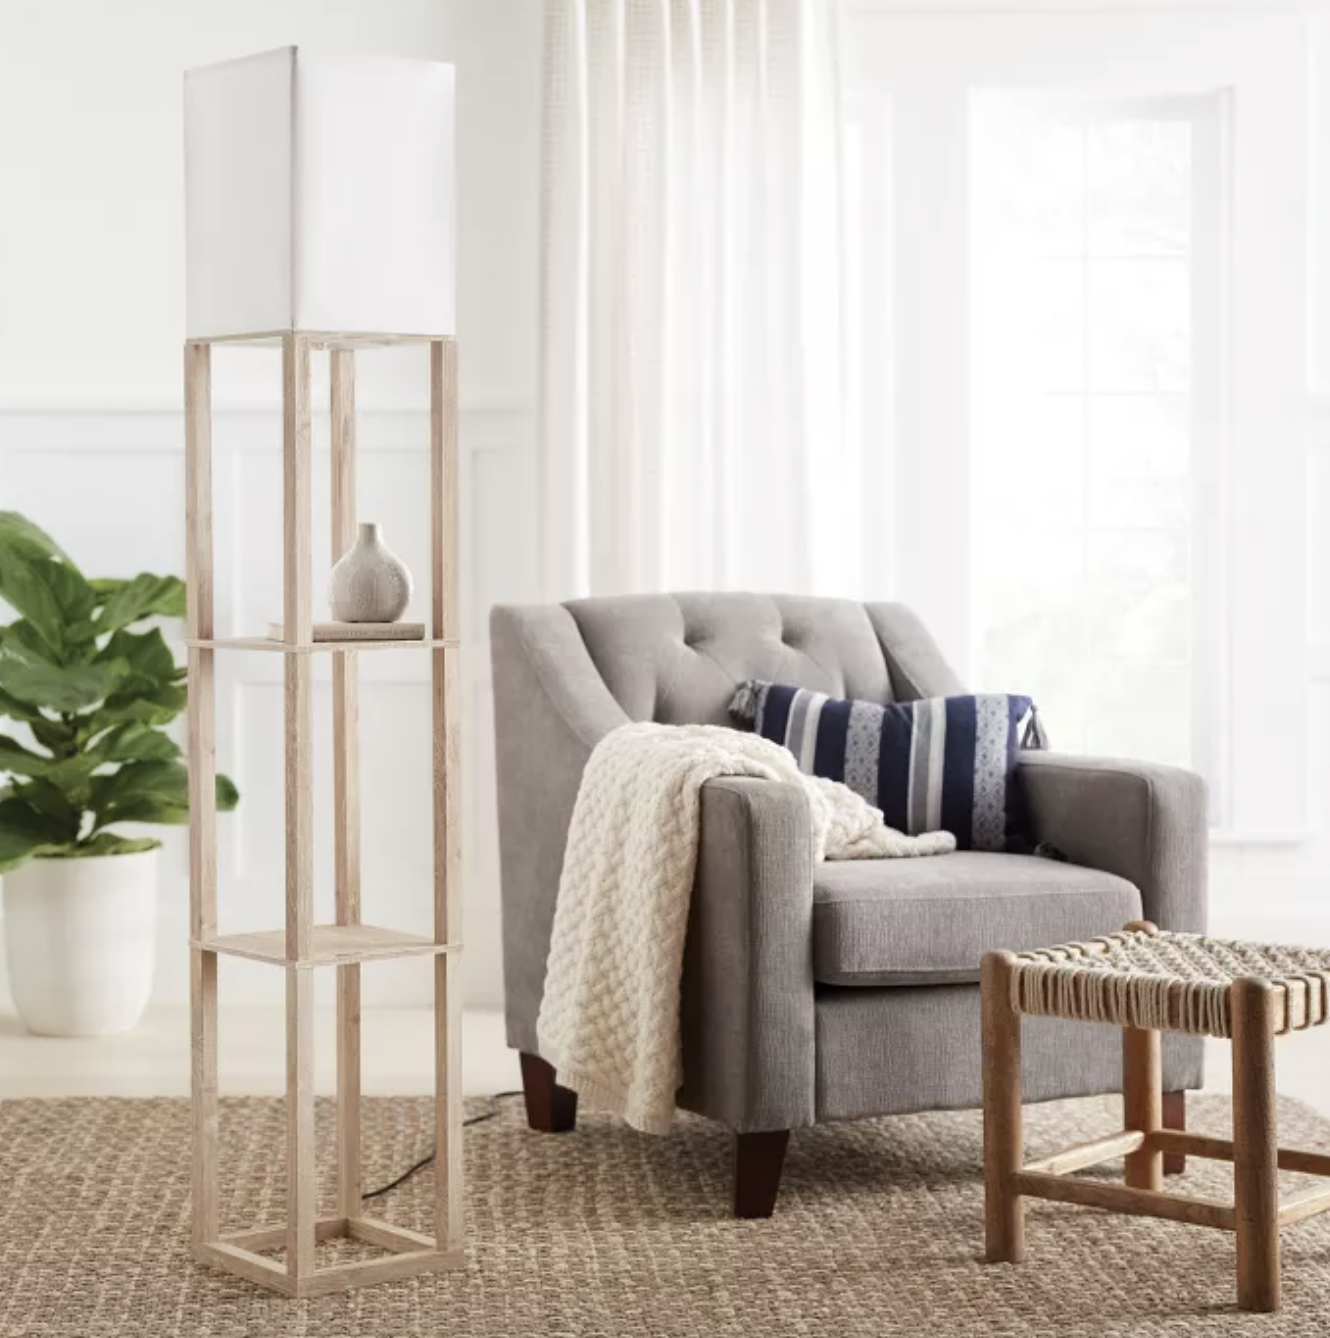 Wooden rectangular lamp with two mini shelves next to gray armchair